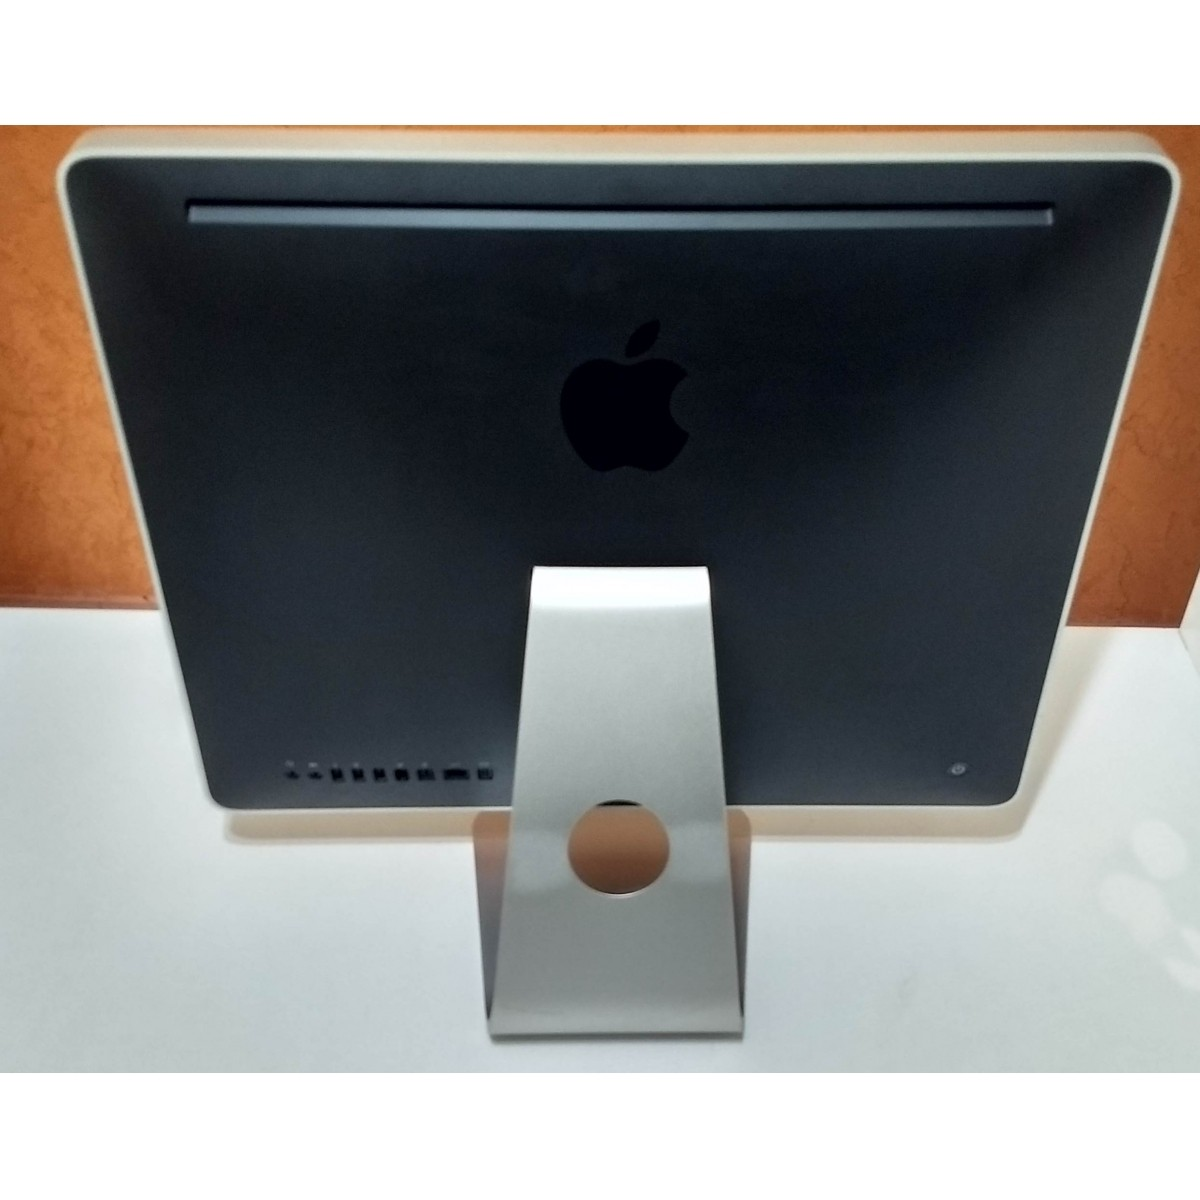 iMac MA876LL/A 20'' Core 2 Duo 2GHz 5GB HD-250GB